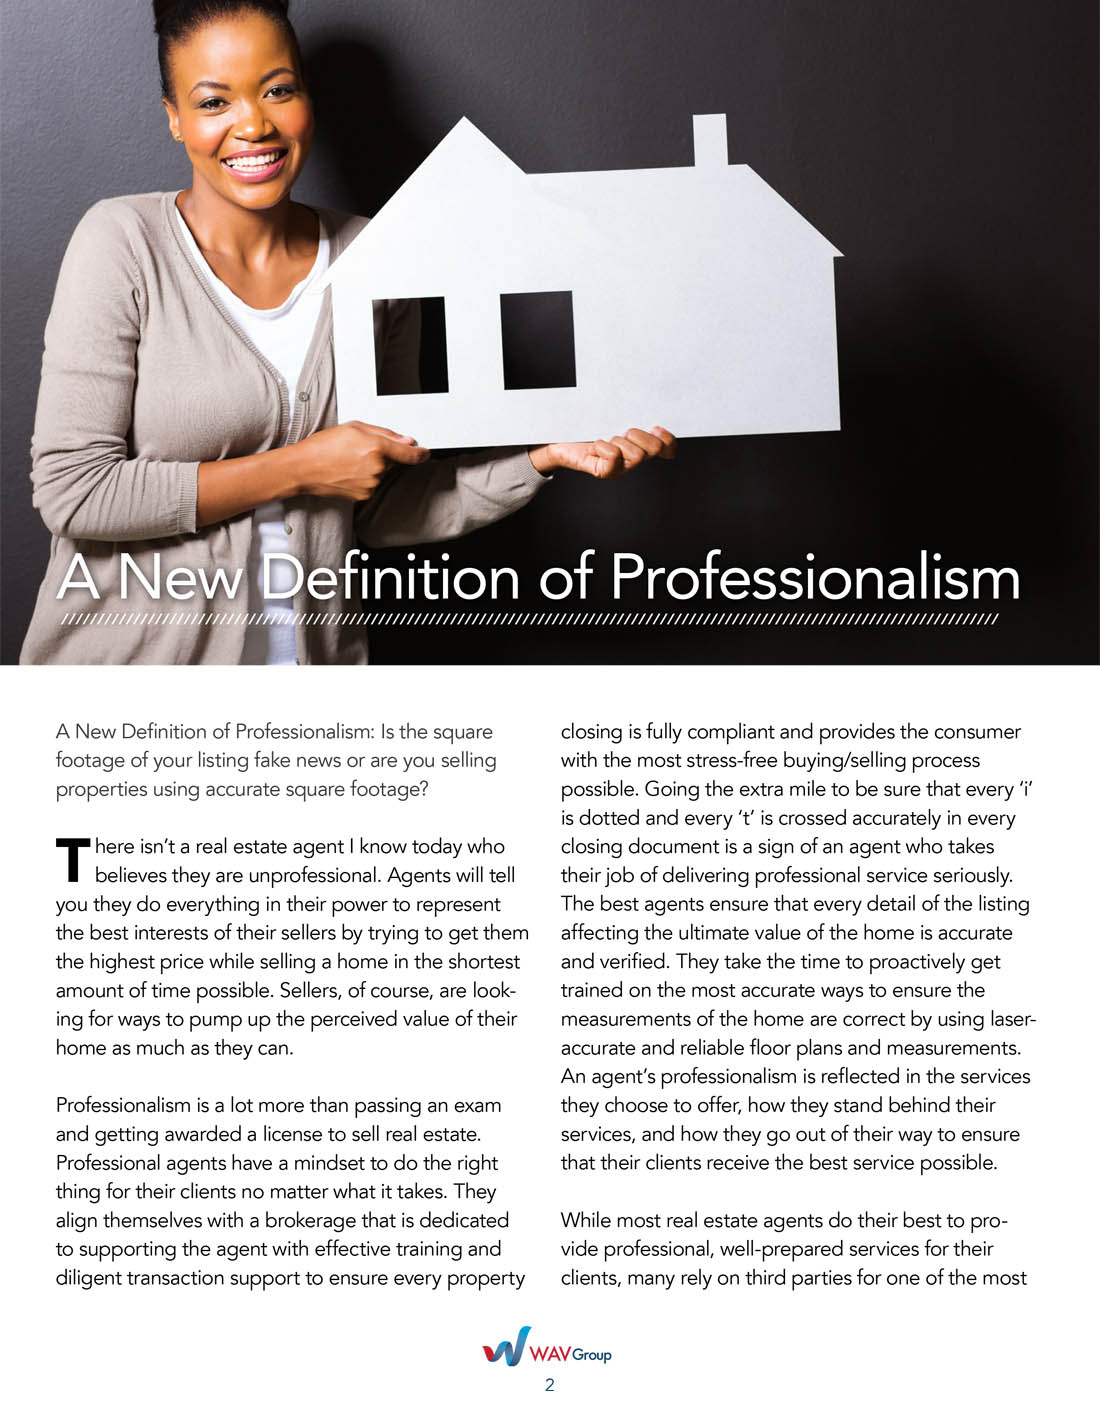 inaccurate square footage can tear down a real estate agents reputation